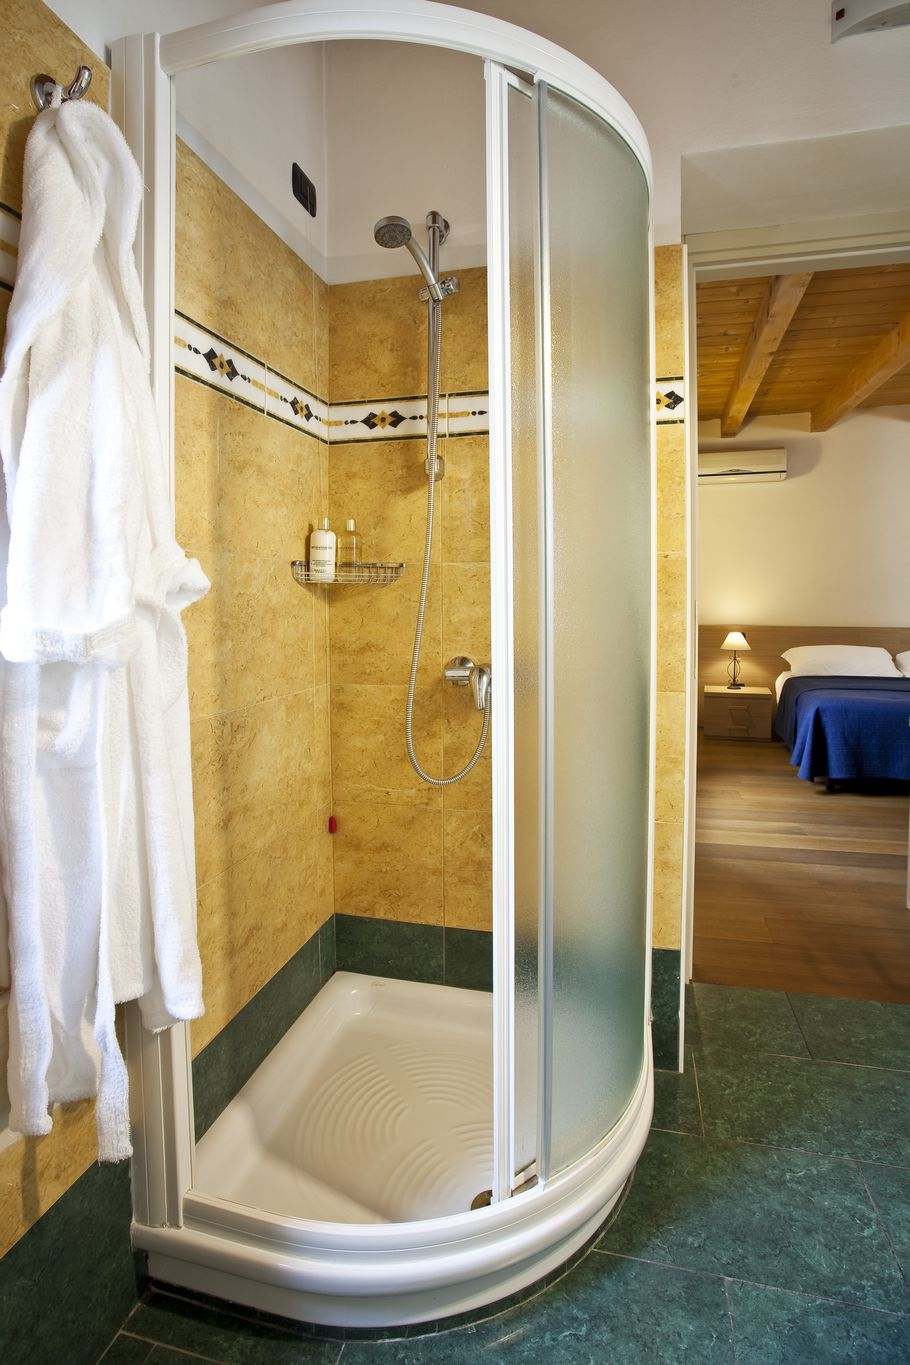 Example photo of the private bathroom, Arena Inn Bed & Breakfast